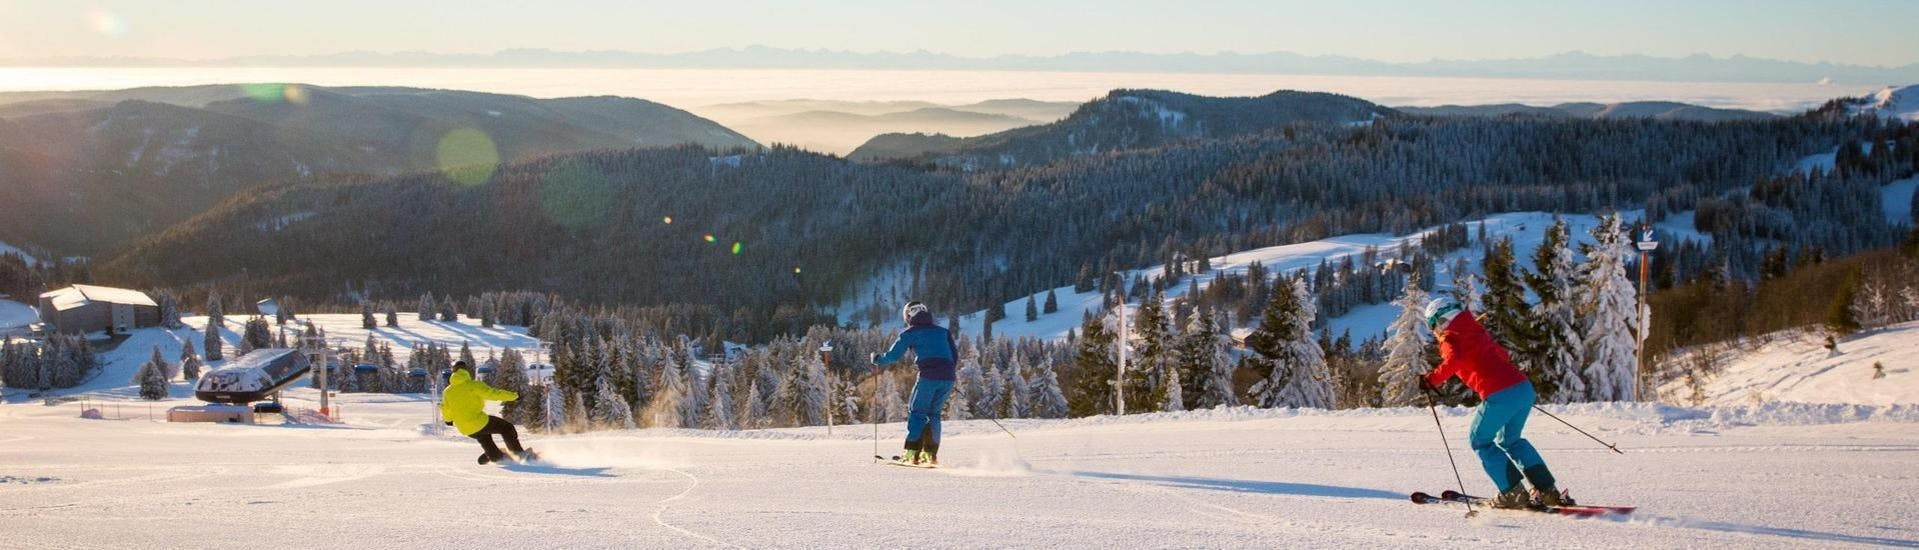 Two skiers and a snowboarder are drawing their tracks in the snow on the ski slopes of Feldberg, where local ski schools offer their ski lessons.